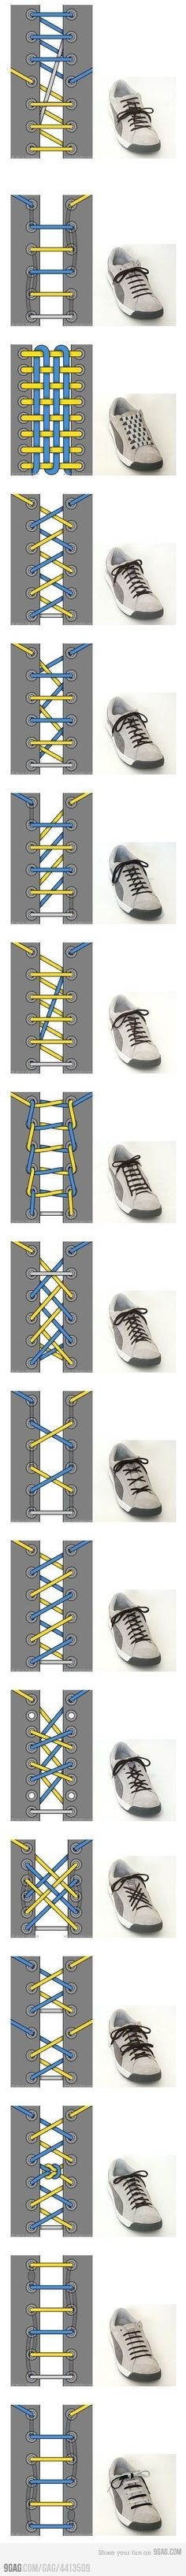 17 Ways To Tie Shoelaces